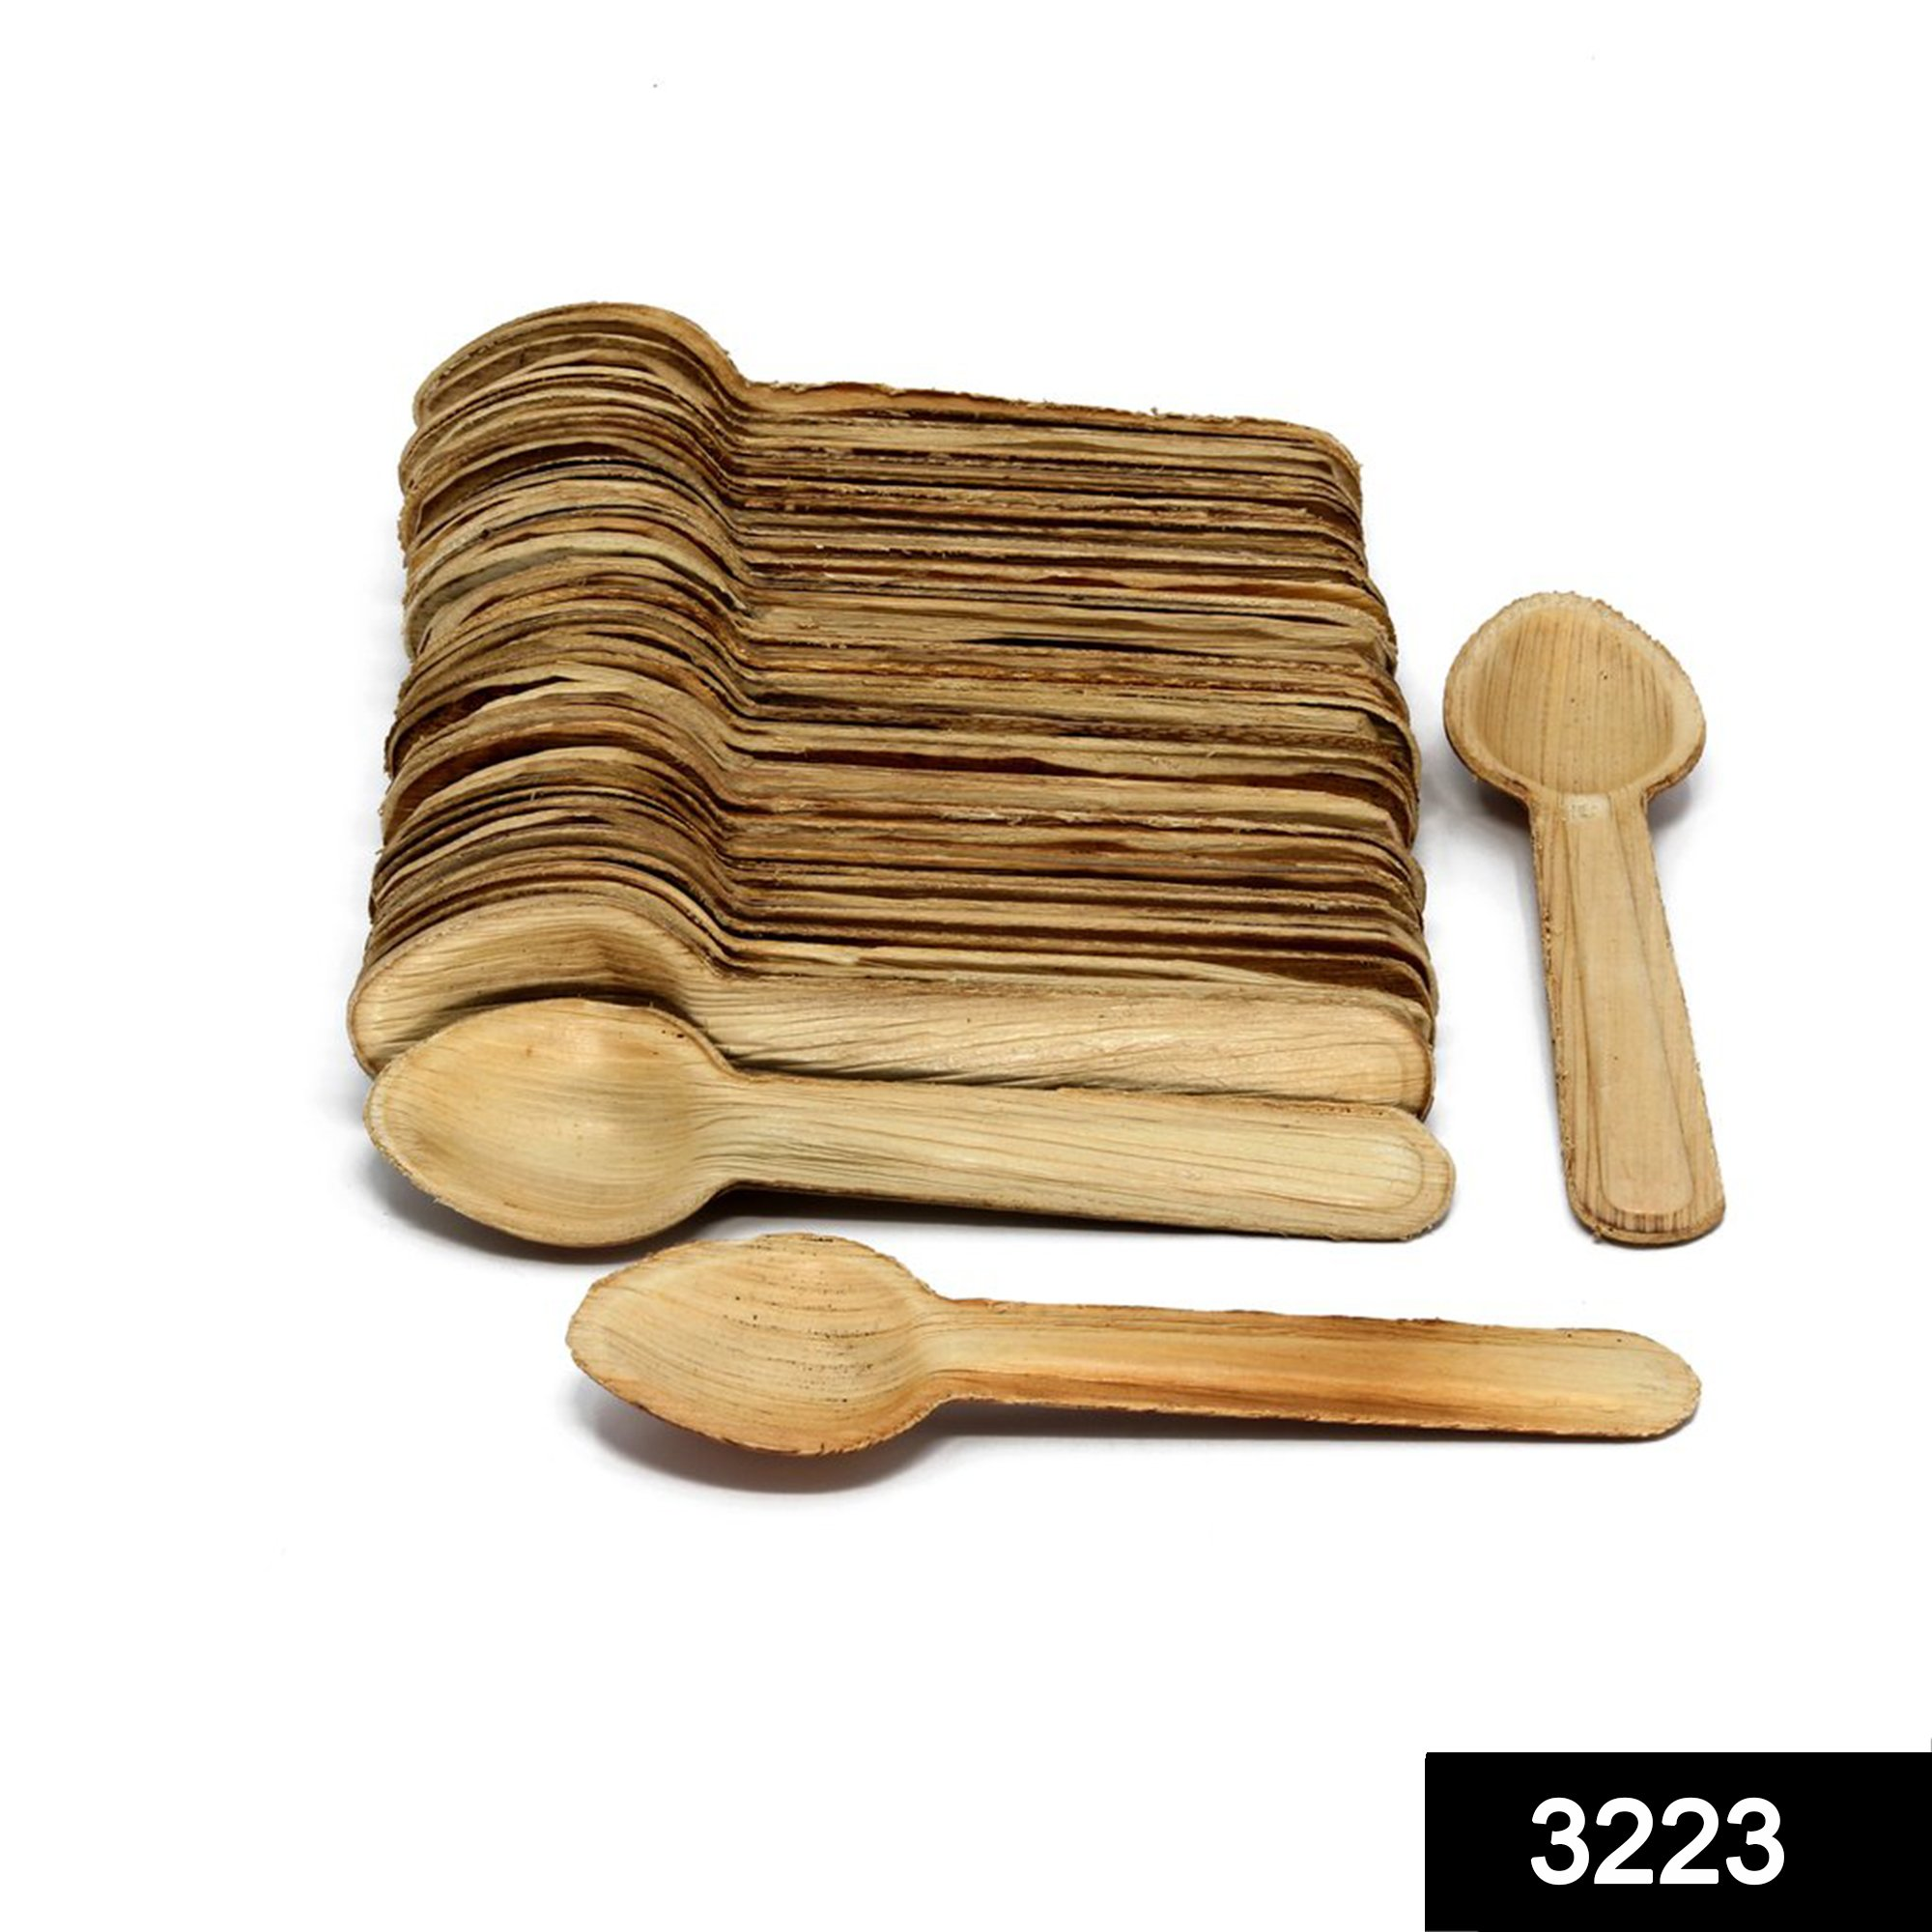 3223 Disposable Eco-friendly Wooden Spoons (Pack of 100) -